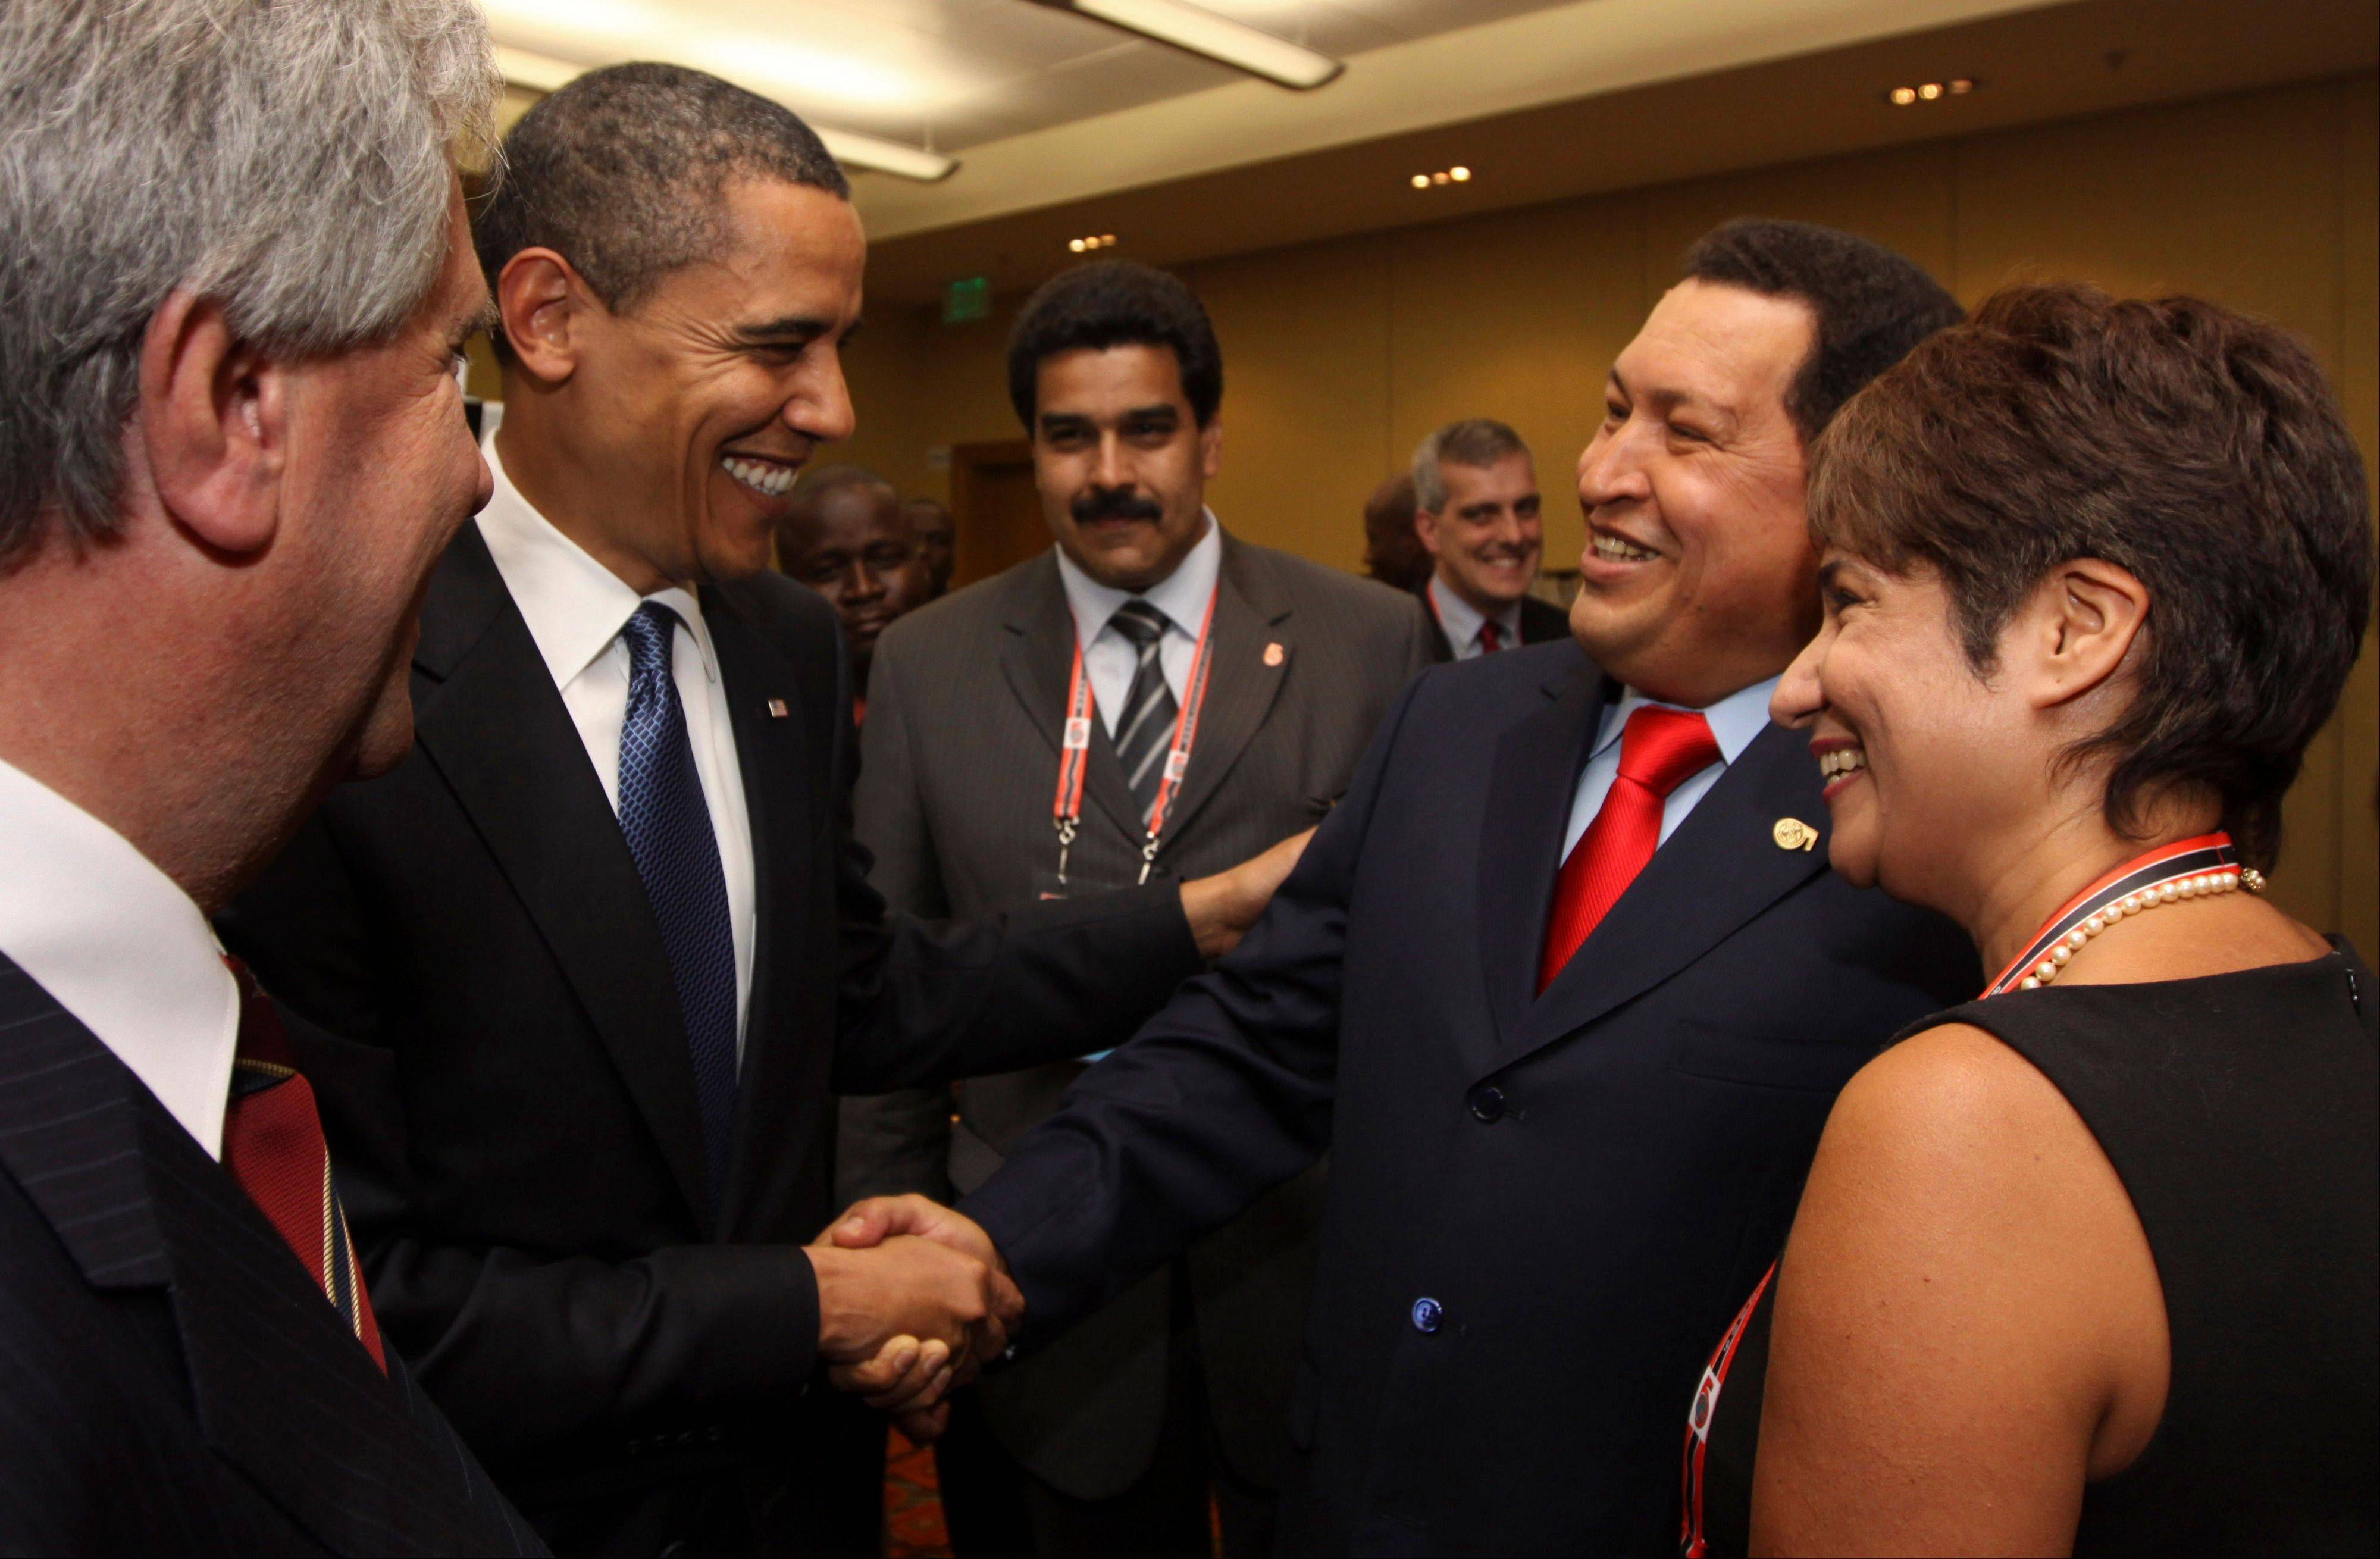 In this April 17, 2009 file photo, President Barack Obama, left, shakes hands with Venezuela's President Hugo Chavez before the opening session of the 5th Summit of the Americas in Port of Spain, Trinidad and Tobago.